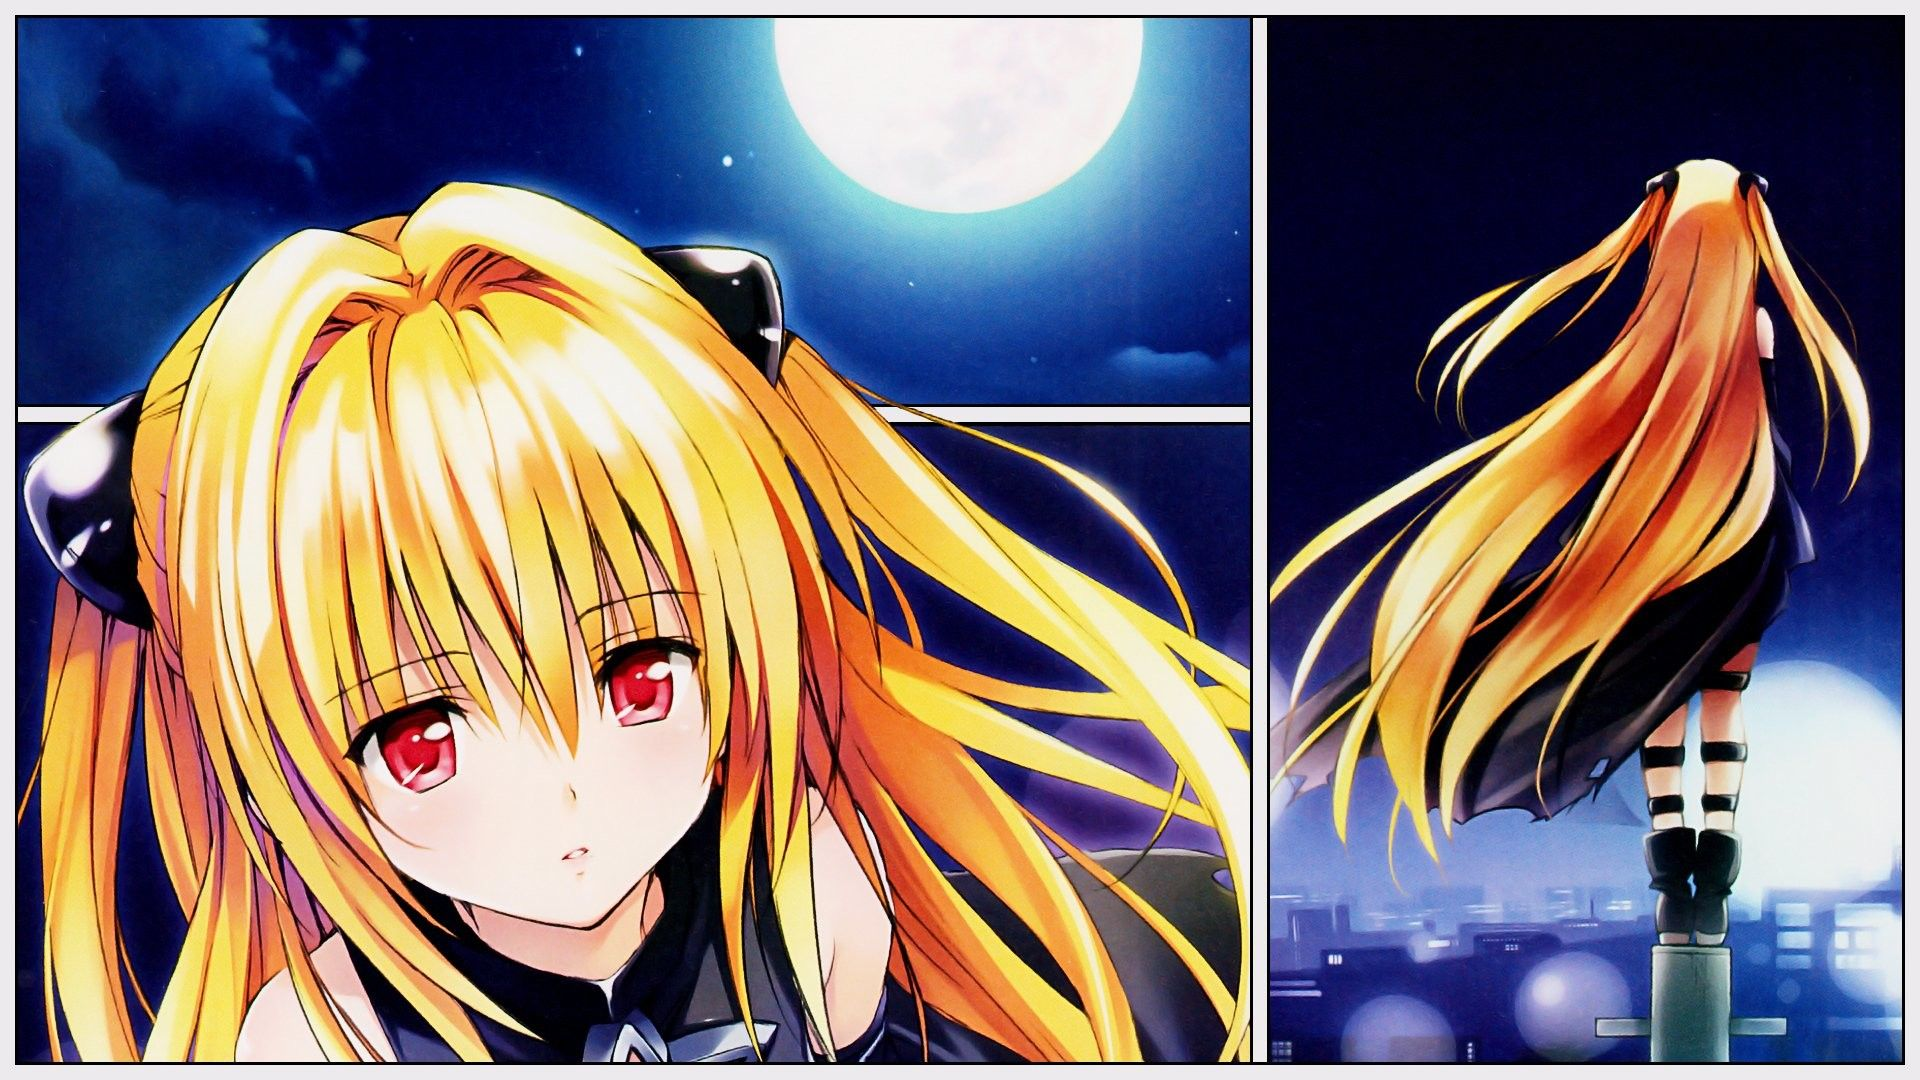 1920x1080 Anime To Love Ru Golden Darkness Wallpaper Download